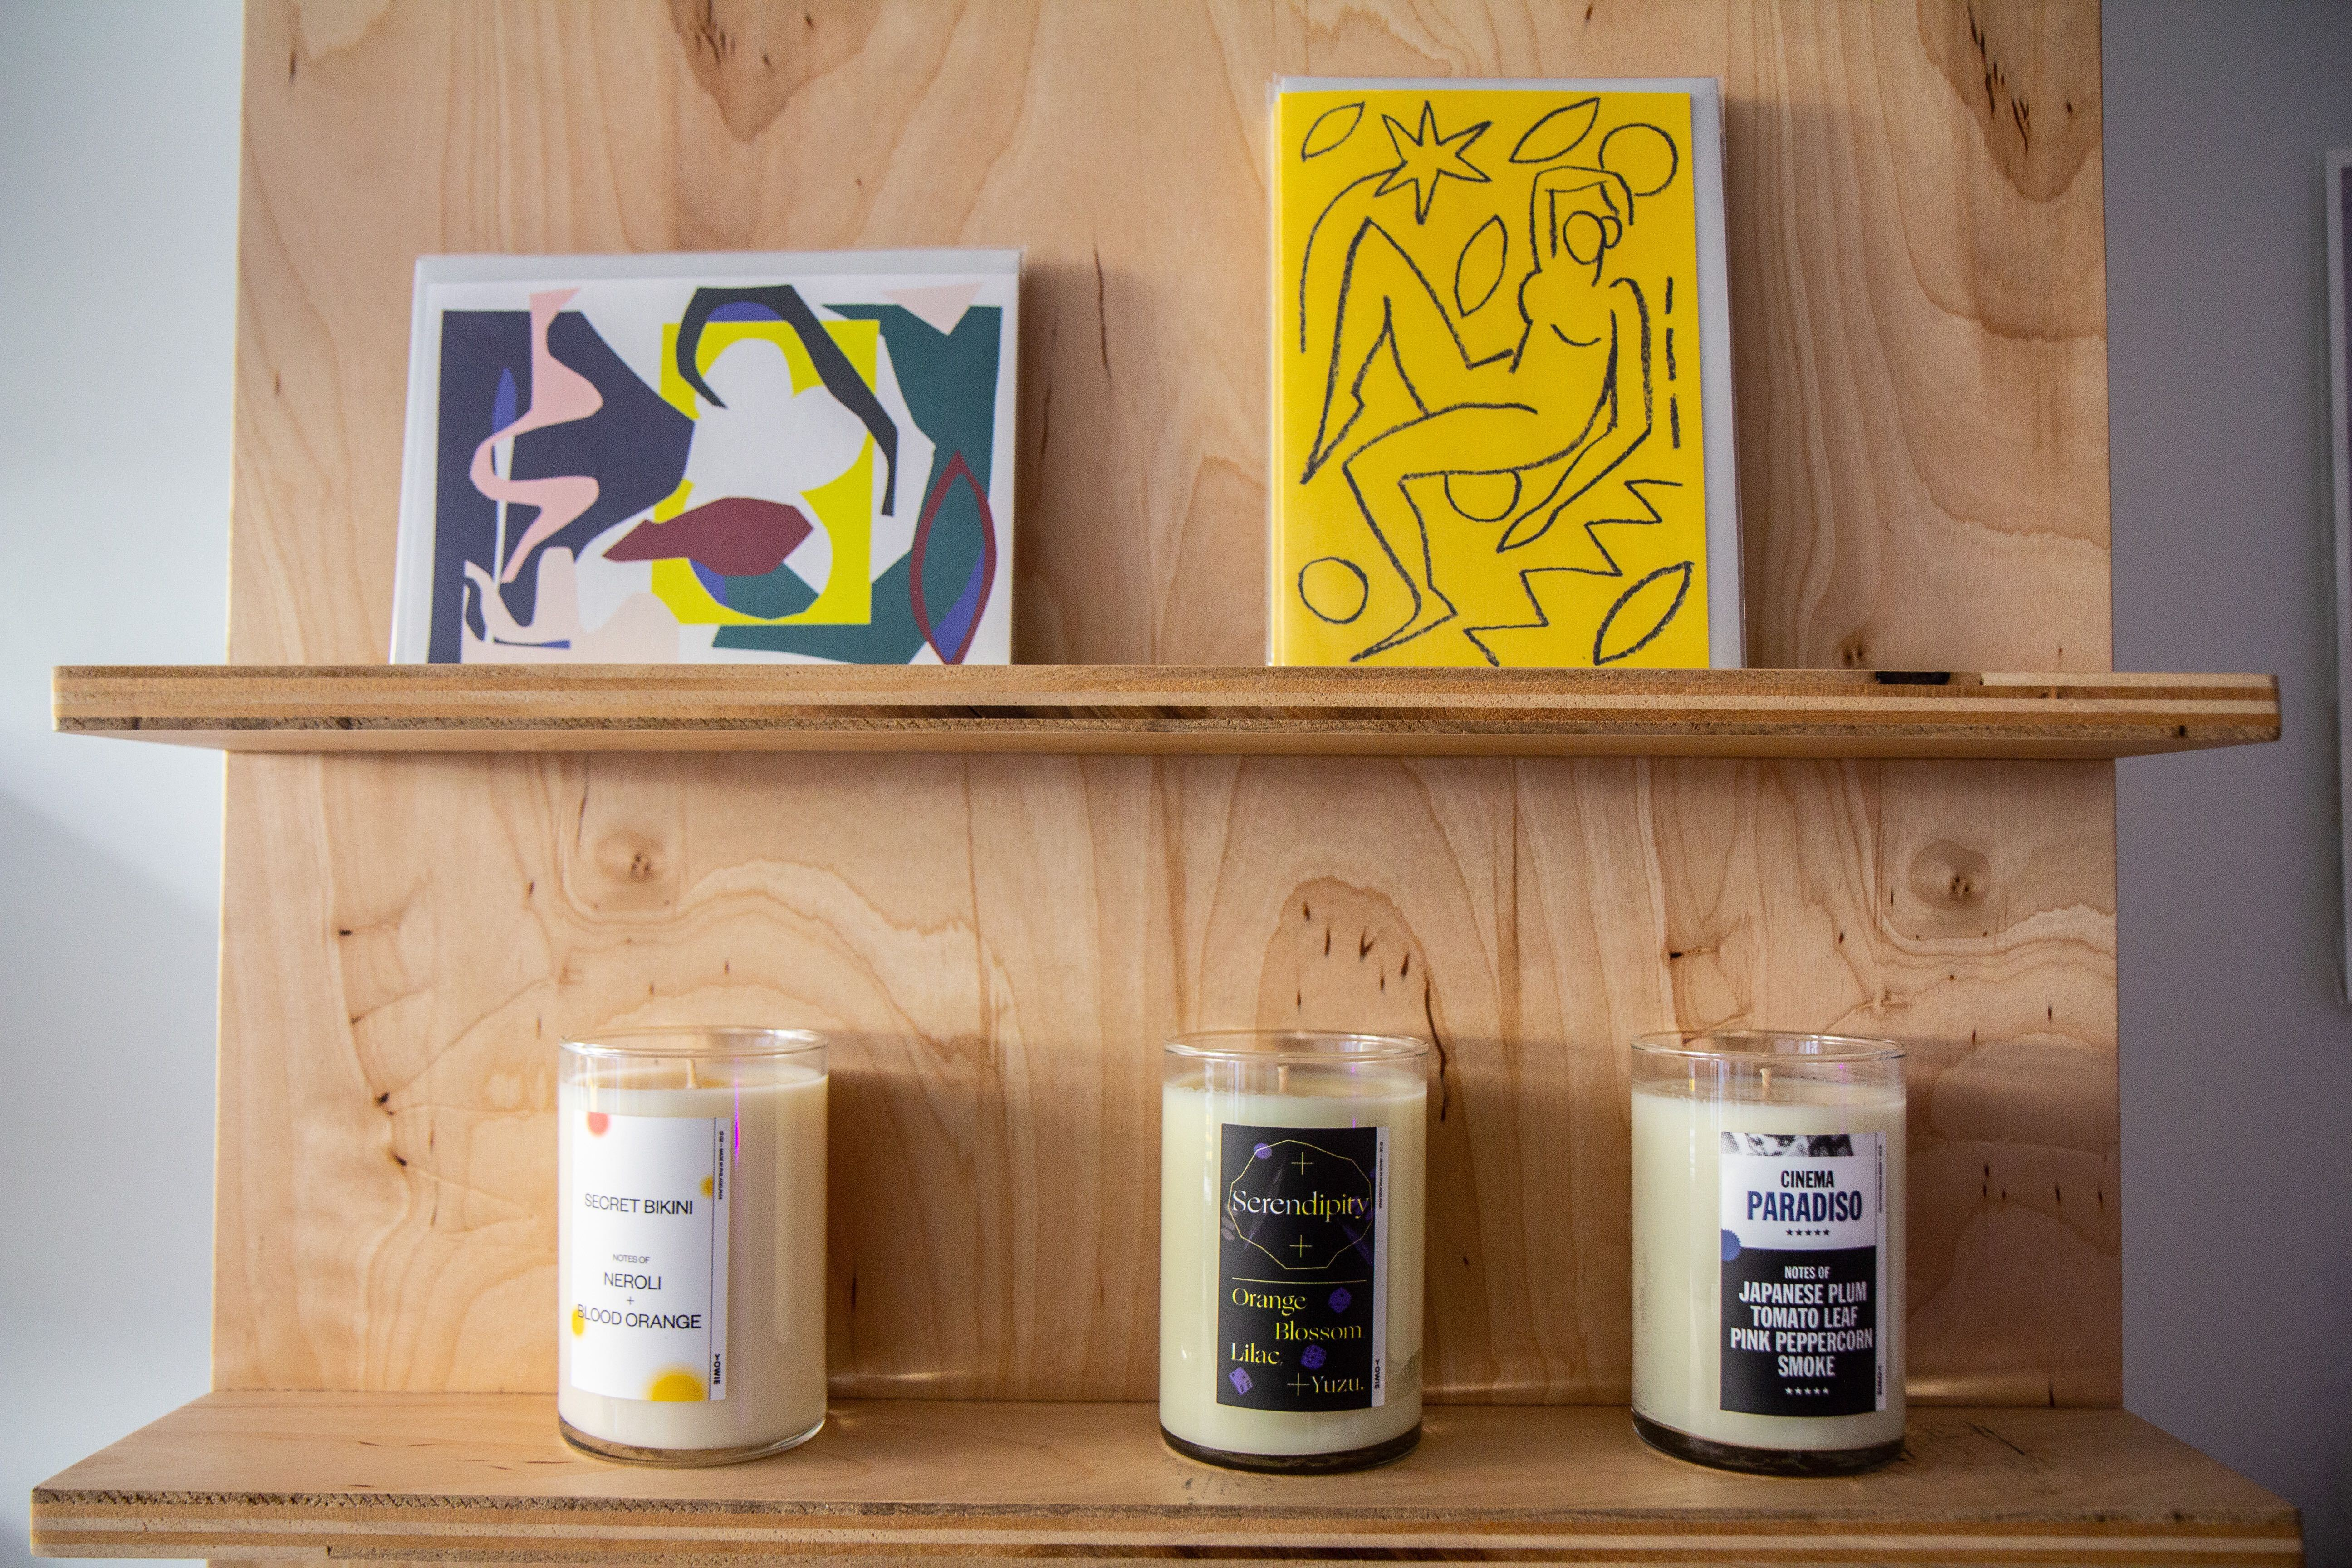 Stationery and candles for sale at YOWIE in South Philadelphia.